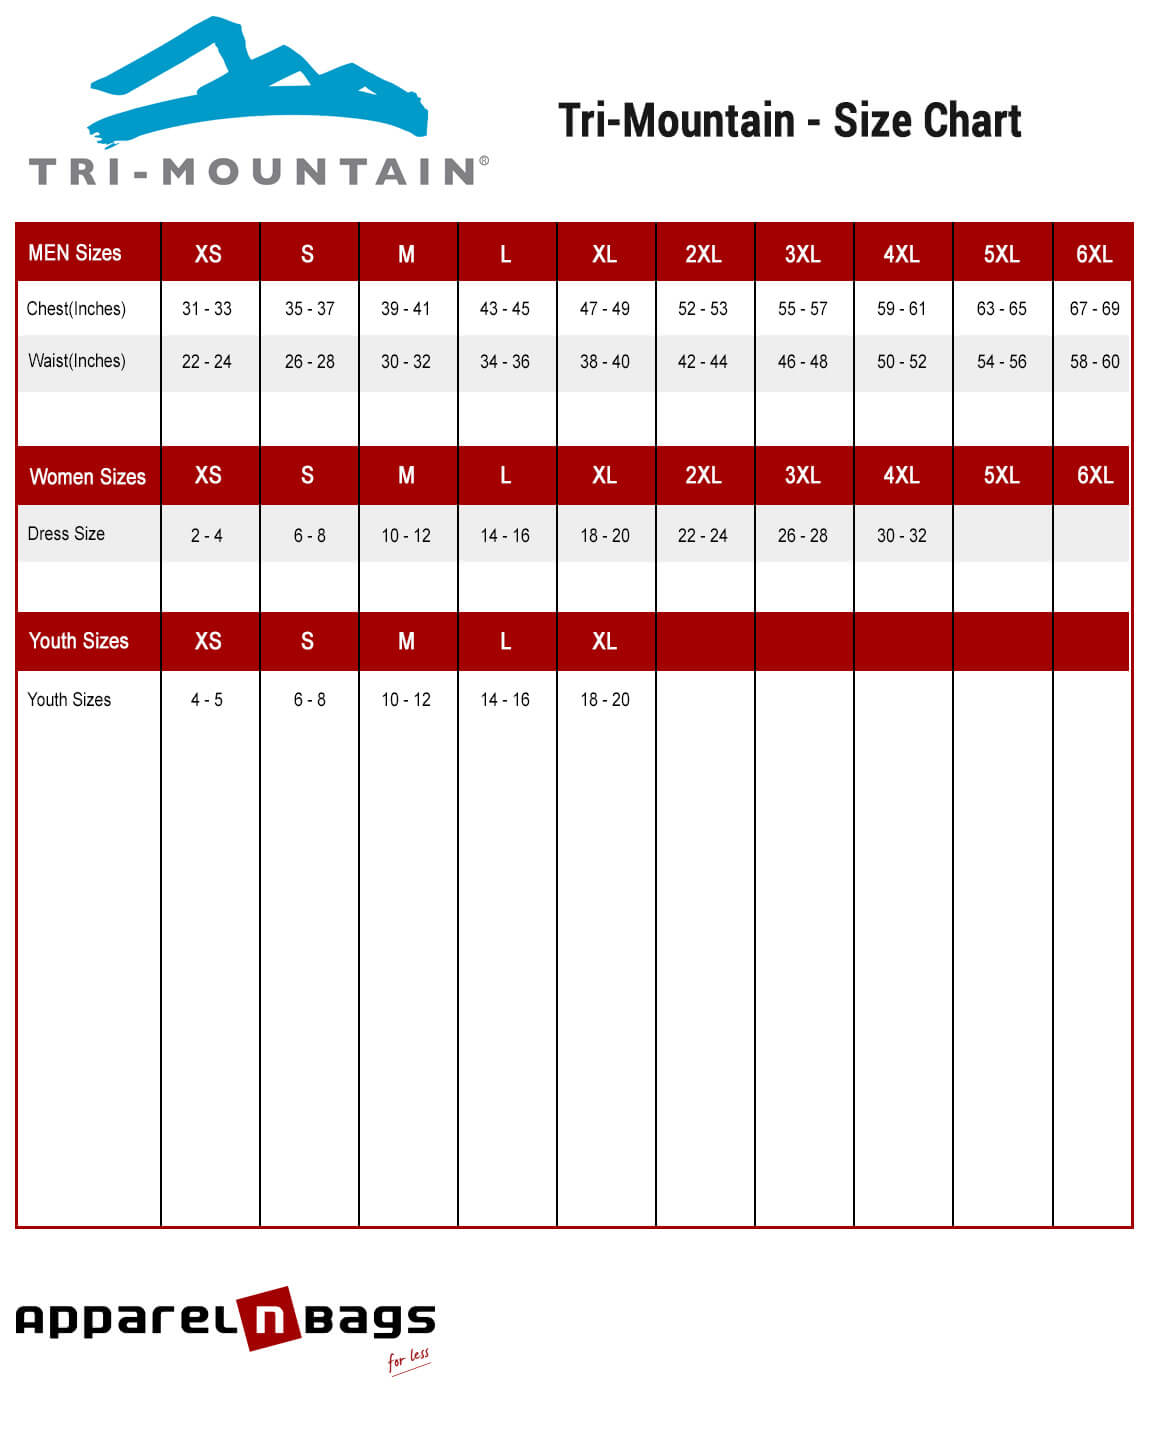 Tri-Mountain - Size Chart